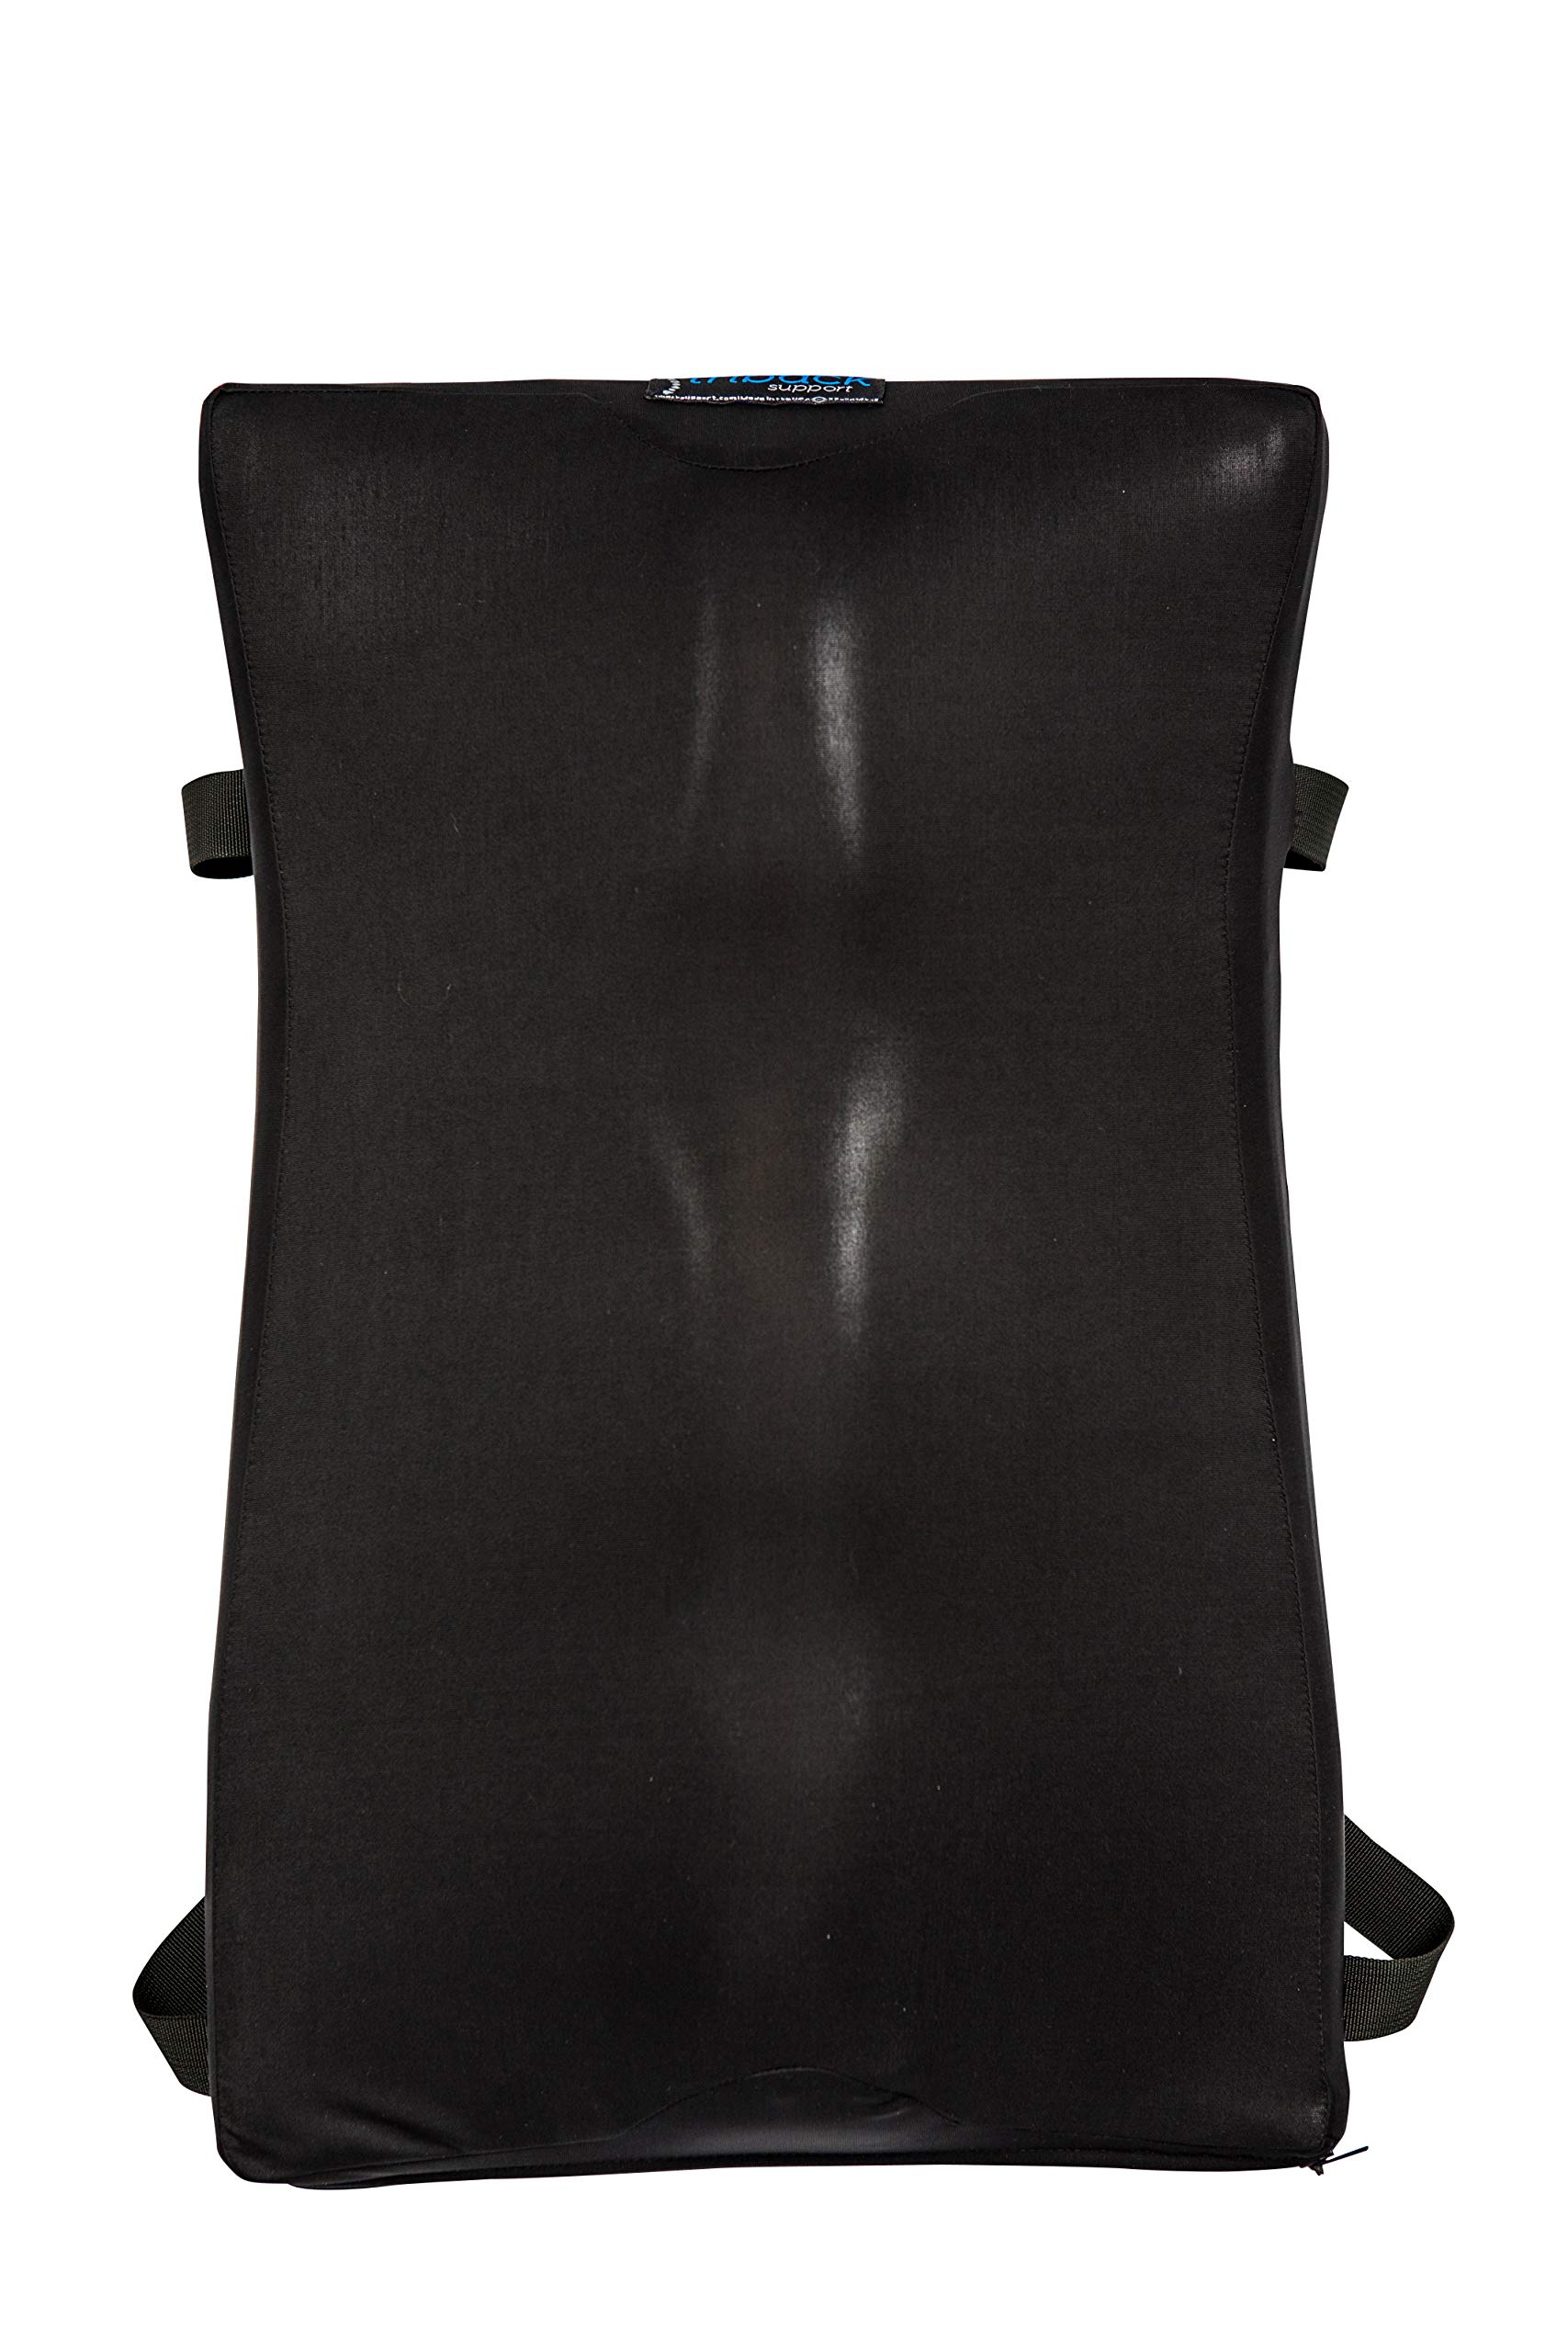 SlouchBeGone Back Support Cushion Made with Memory Foam with Adjustable Straps